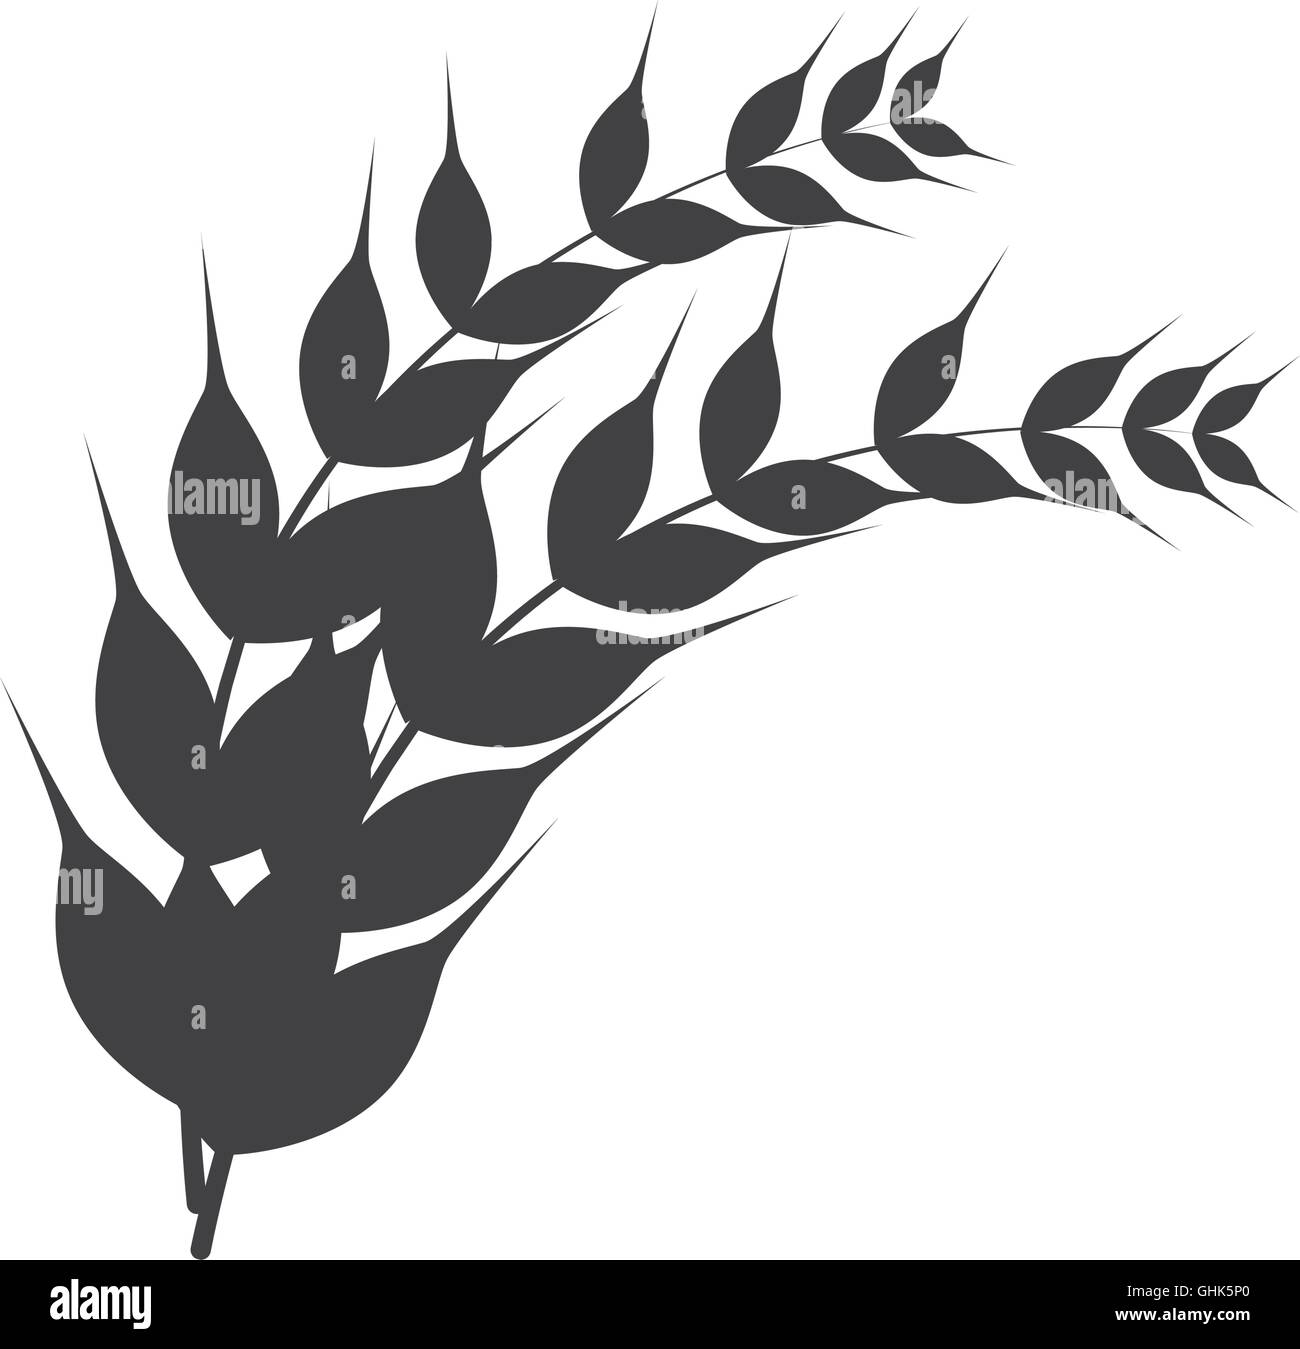 laurel branch nature icon vector graphic - Stock Image